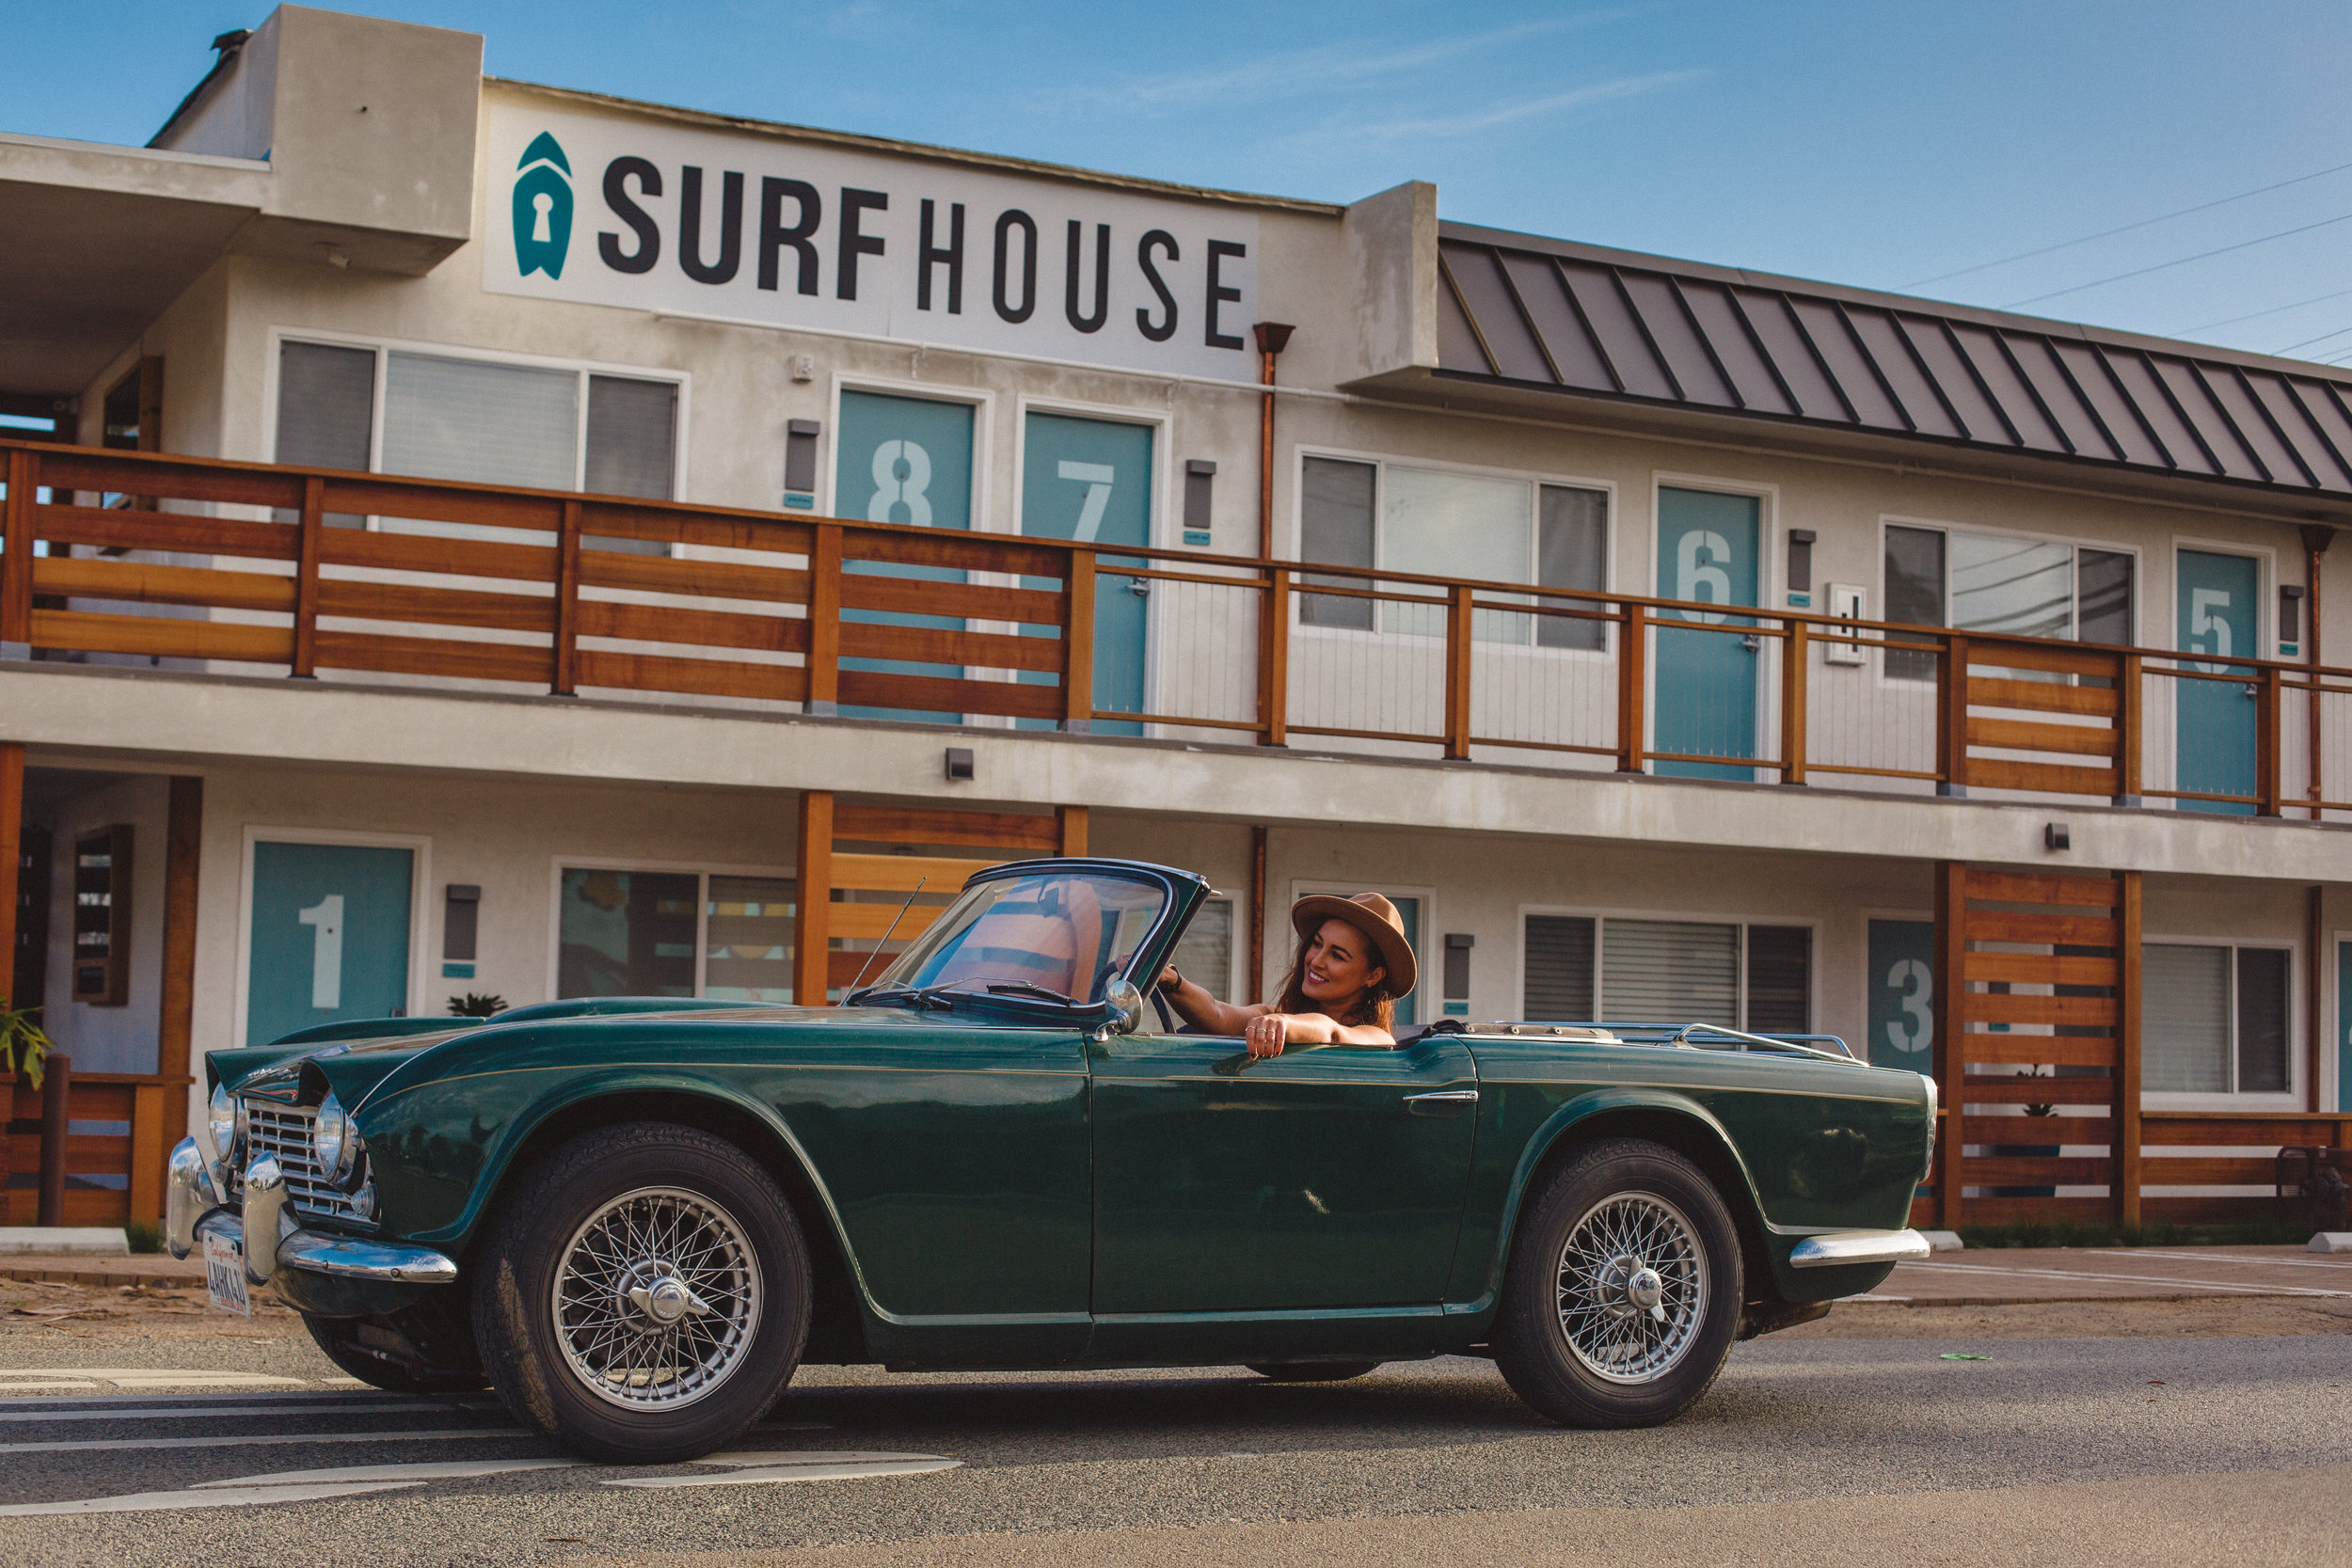 The Surfhouse! - There are plenty of charming locations to stay in Leucadia and Encinitas, including inns, hotels, and Air BNBs.However, we highly recommend the The Surfhouse, an adorable boutique hotel owned by our friends!